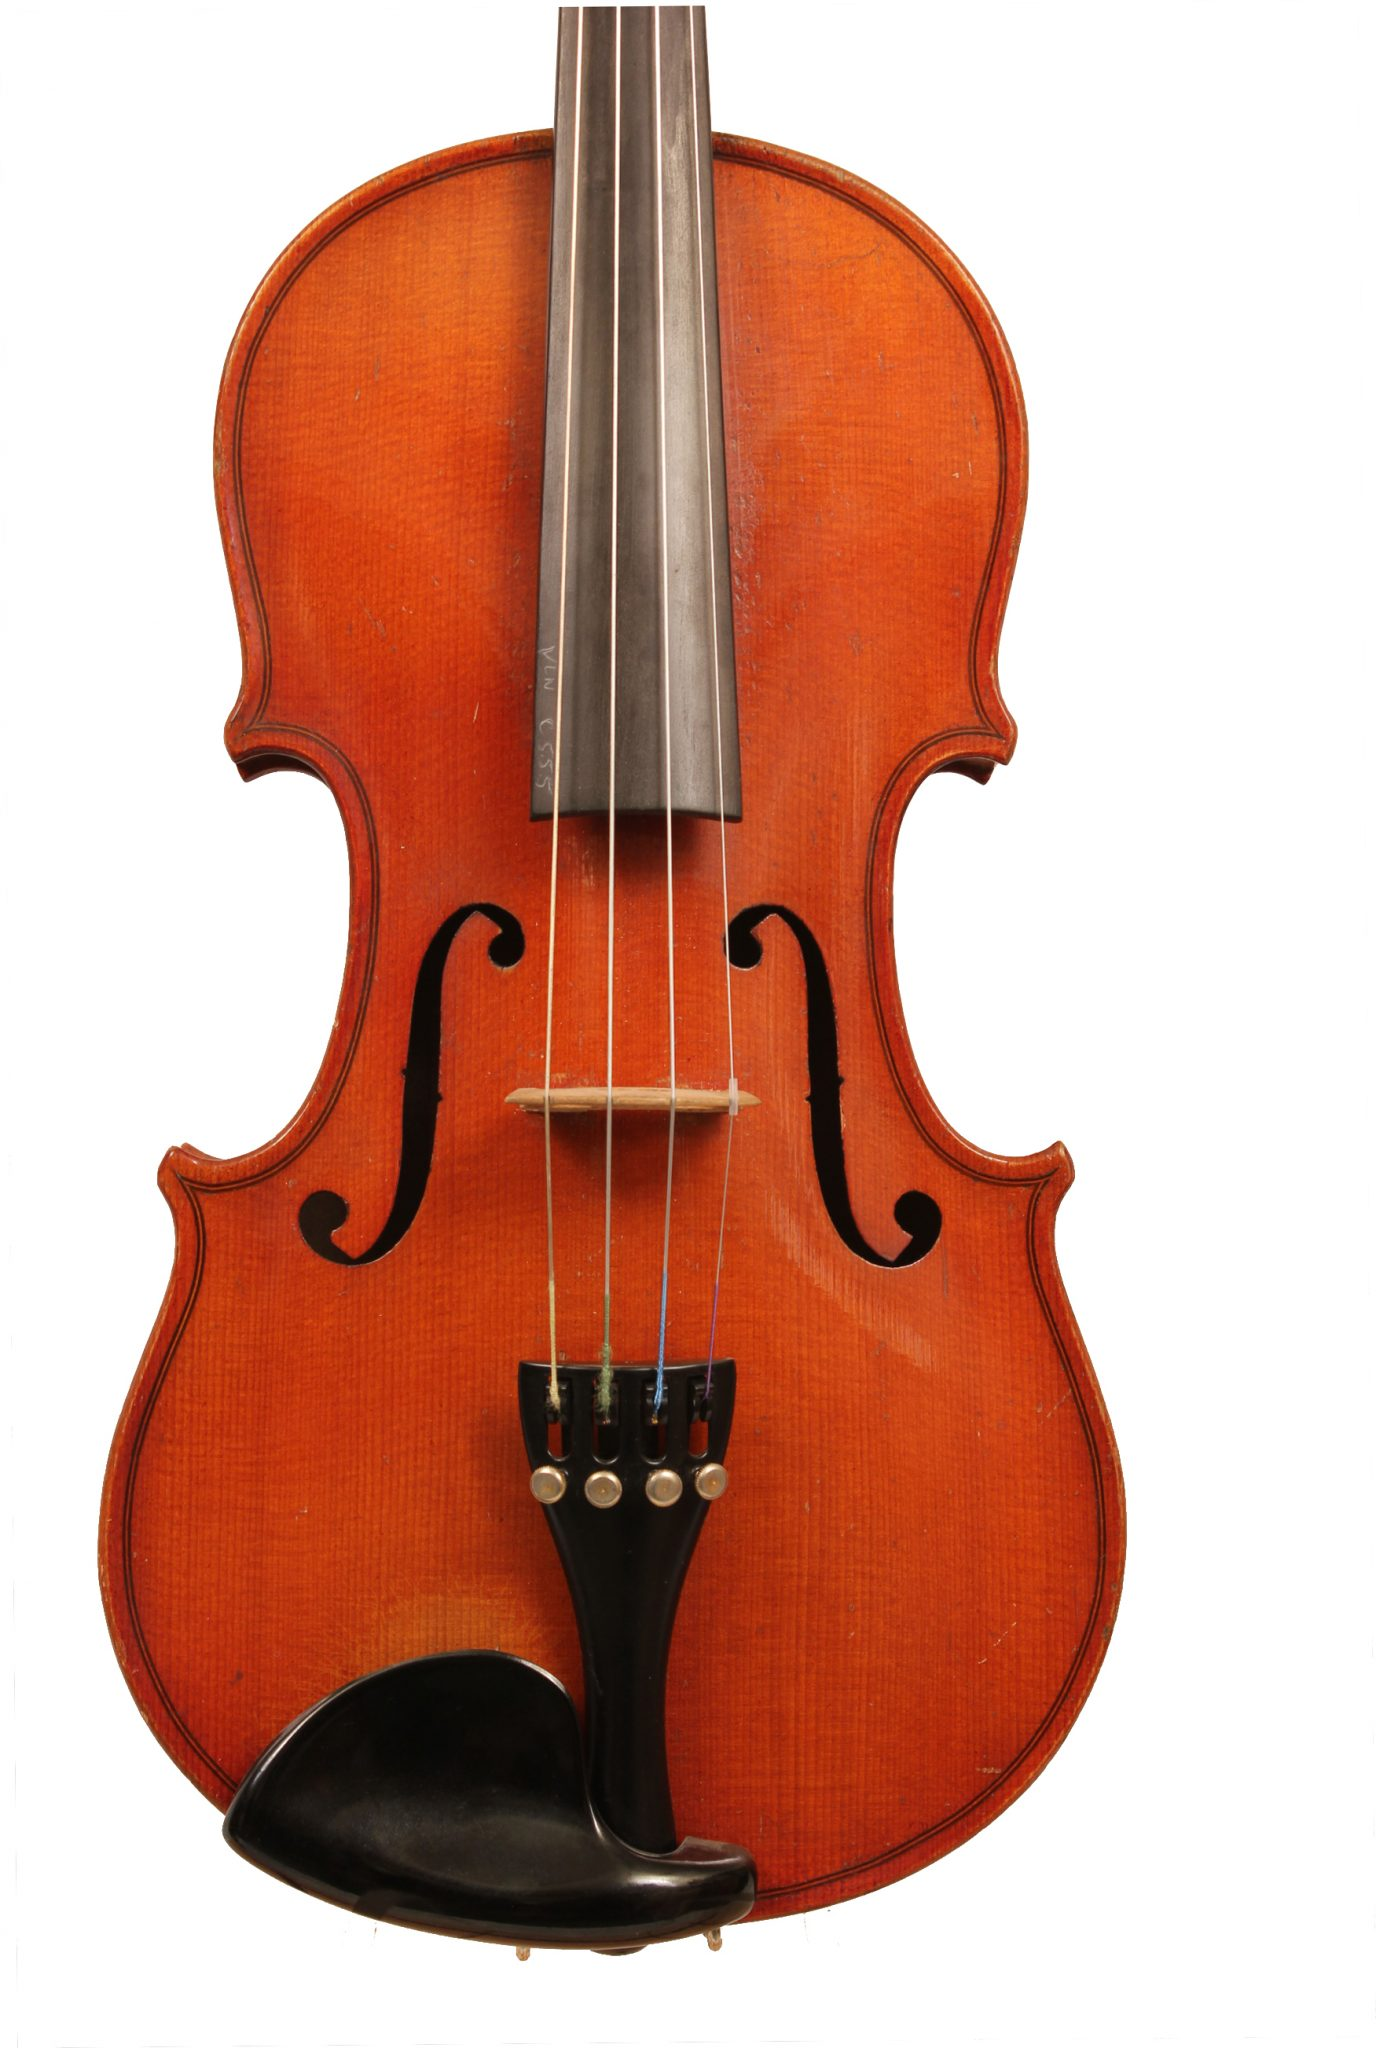 Violin Czechoslovakia C.1950 for sale at Bridgewood and Neitzert London